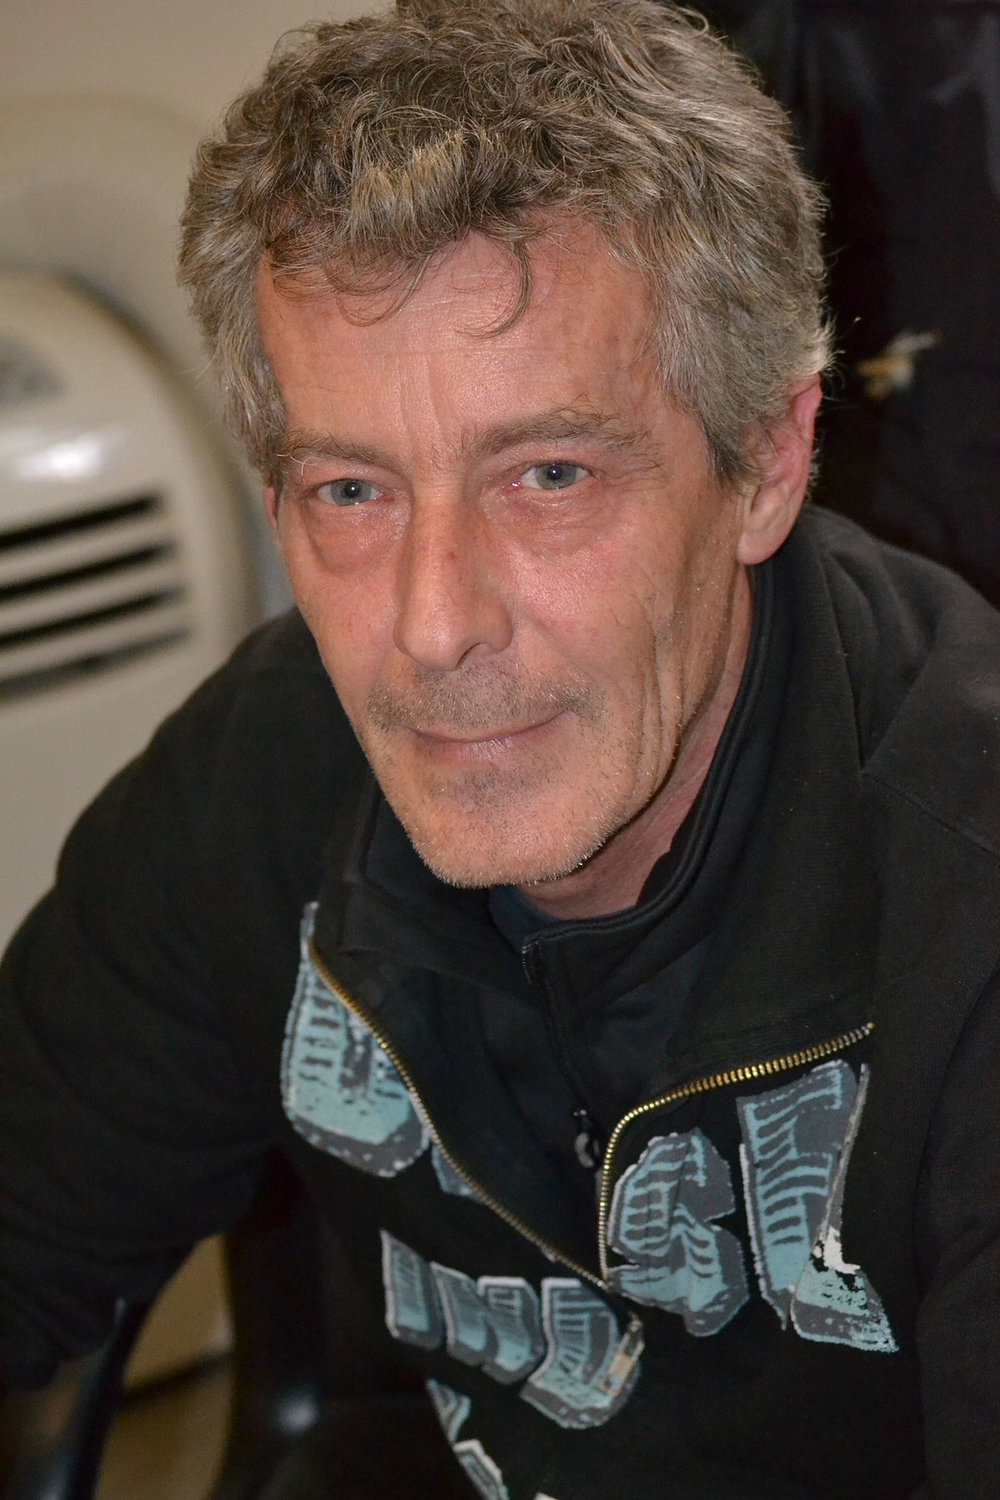 Director Michele Soavi